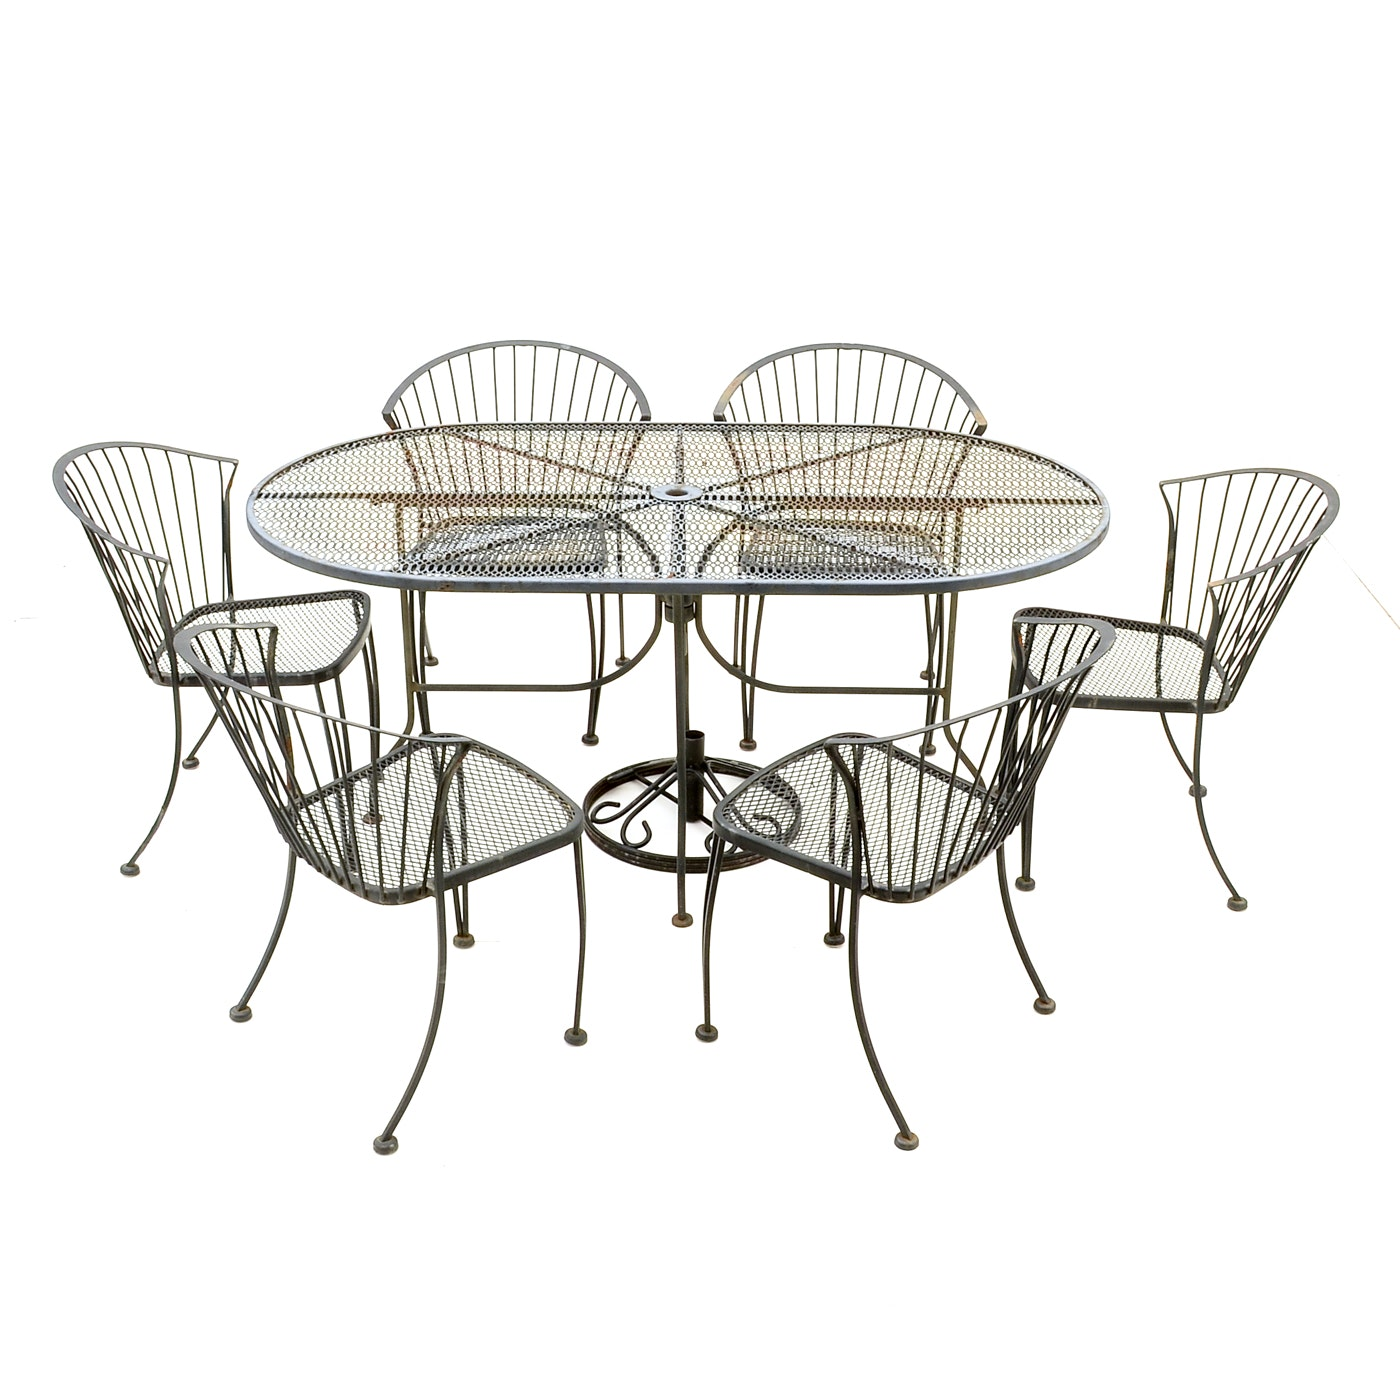 High Quality Carolina Forge Patio Table And Six Chairs ...